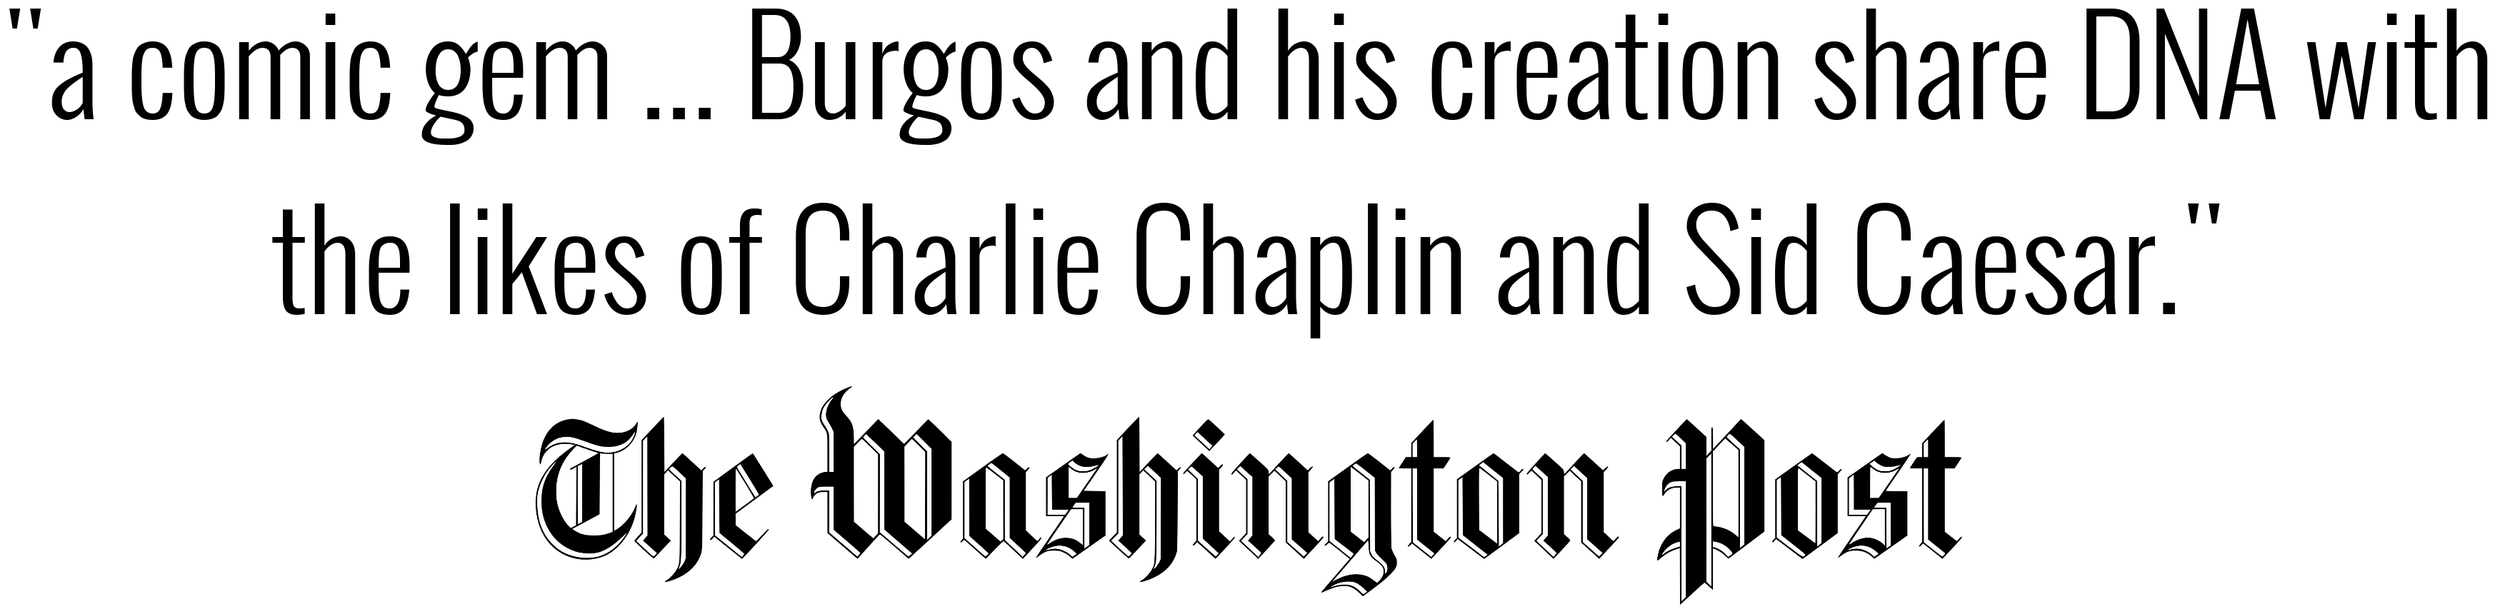 Washington Post quote.jpg